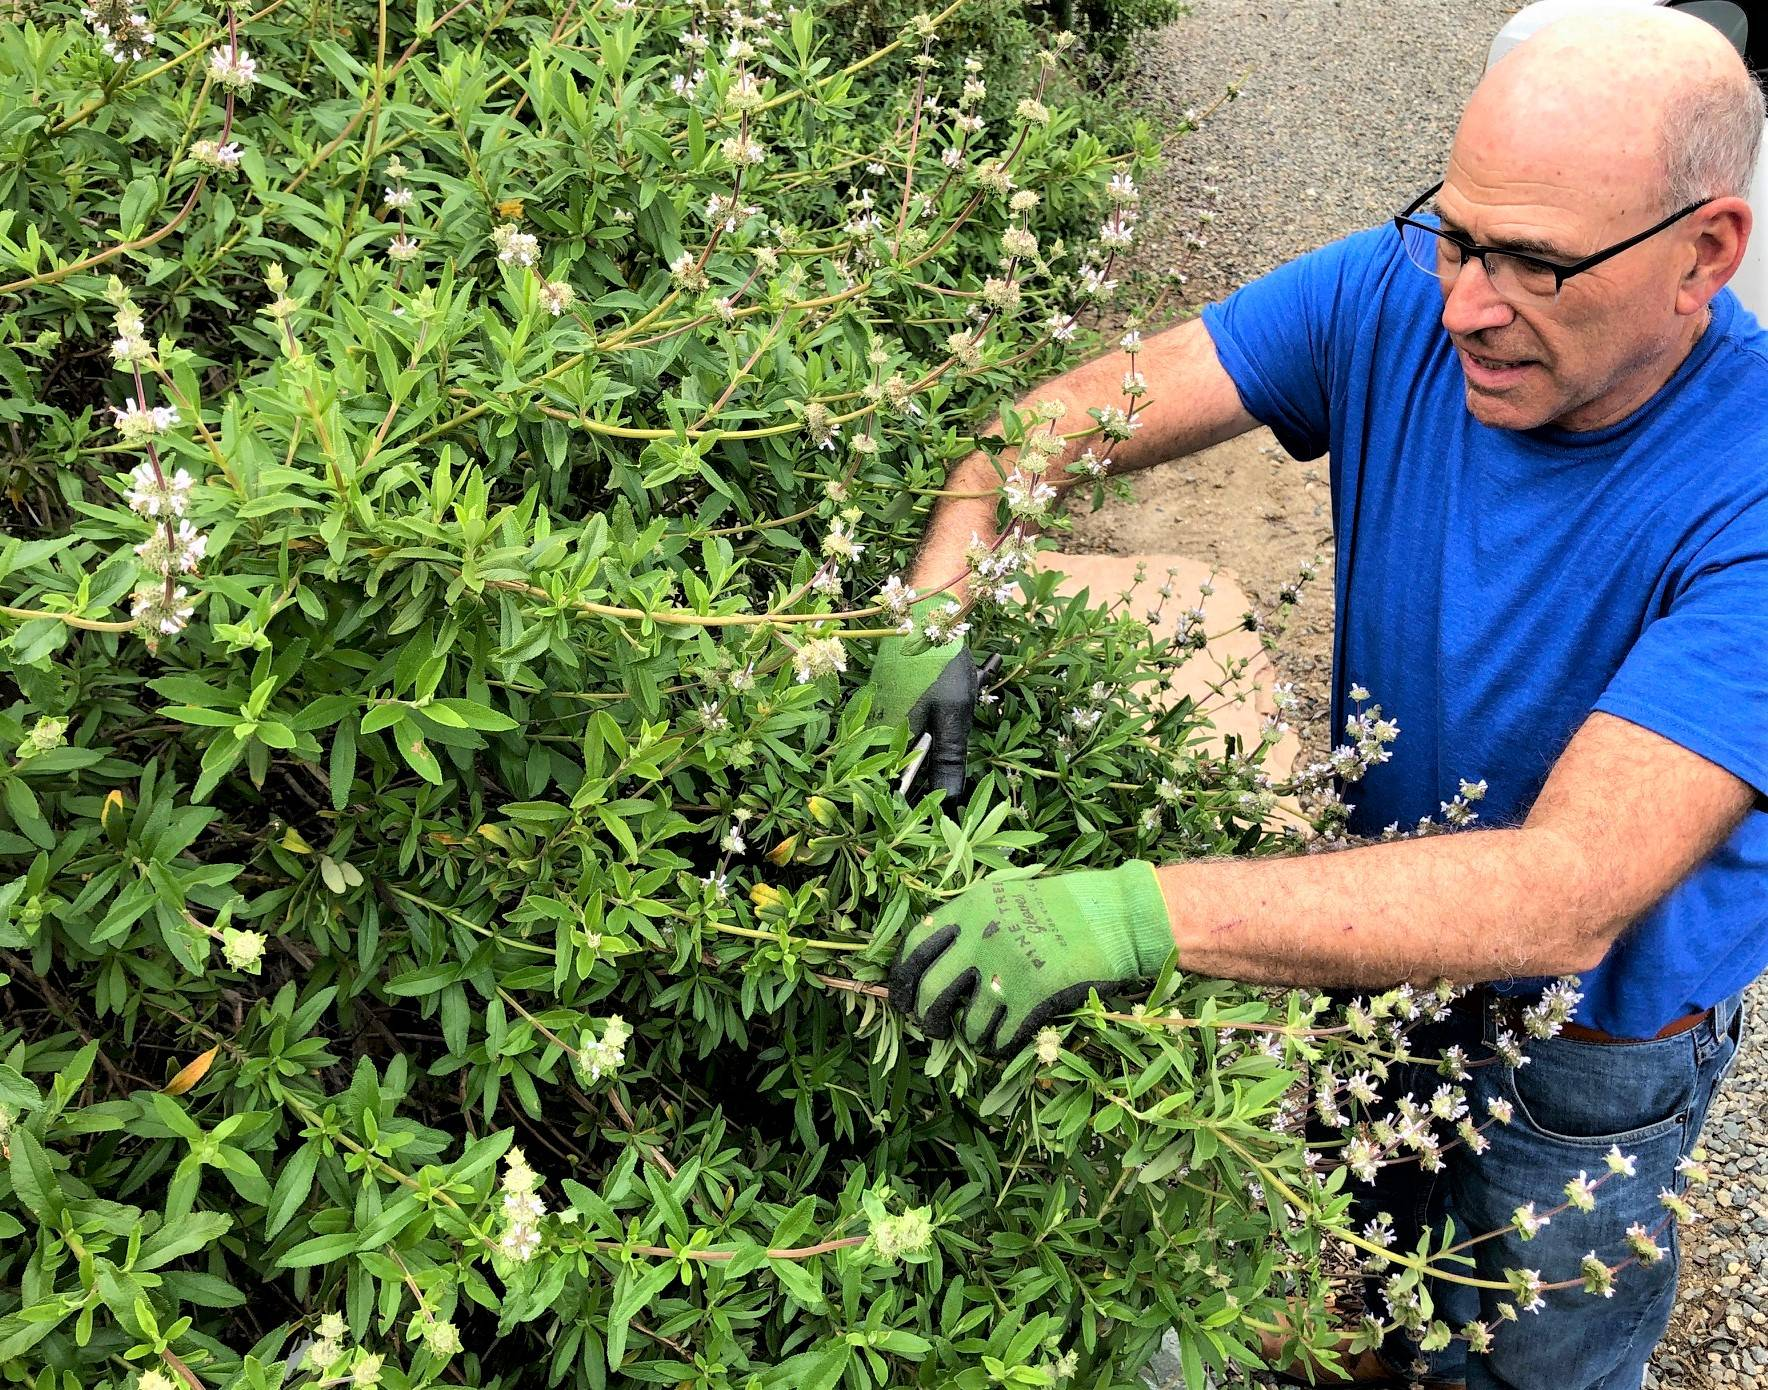 High Quality Organics Express founder Jerry cutting sage leaves after blossom